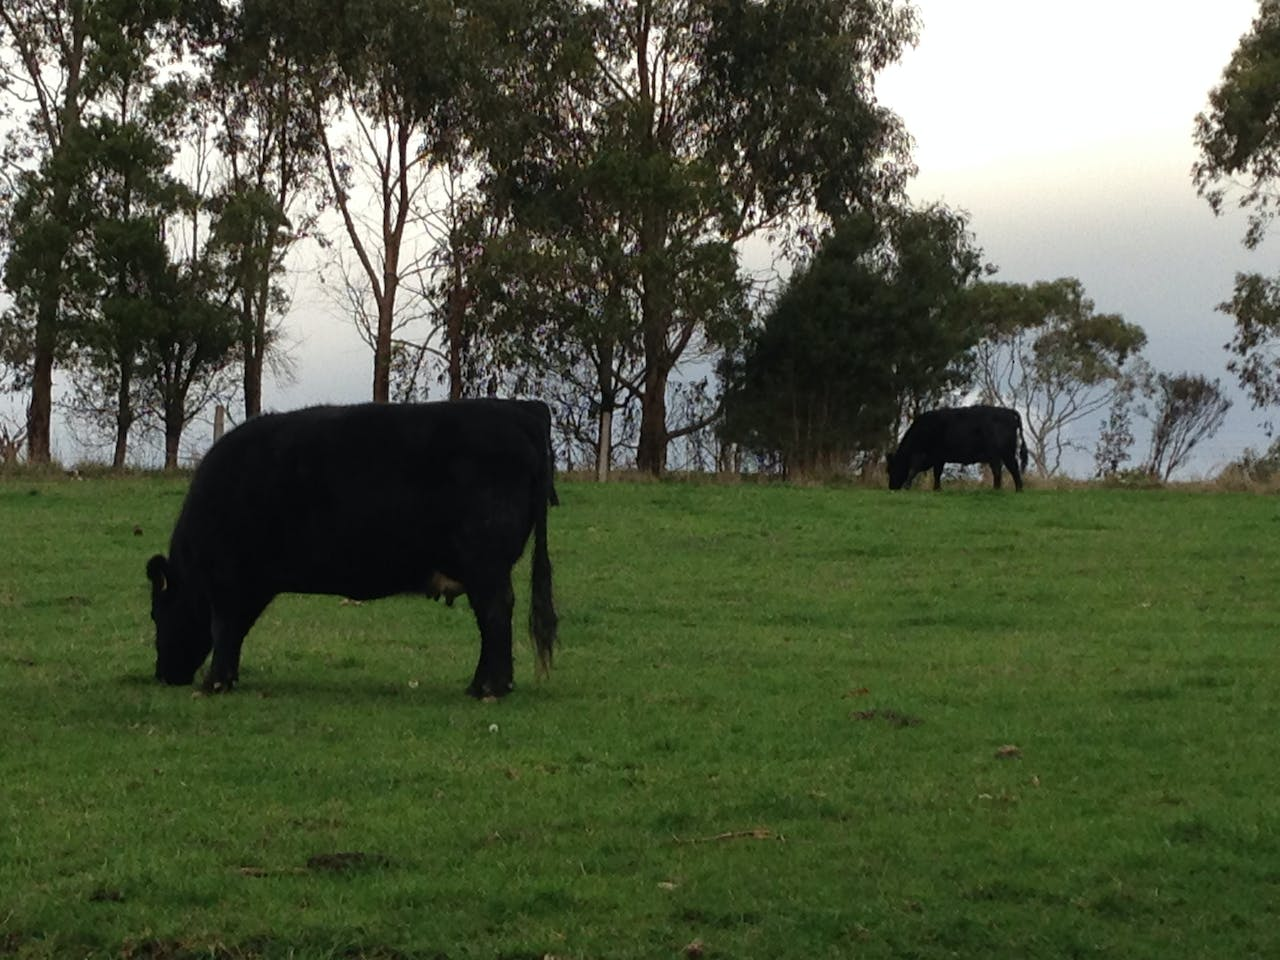 Anderley has 35 acres and friendly cattle for guests to meet